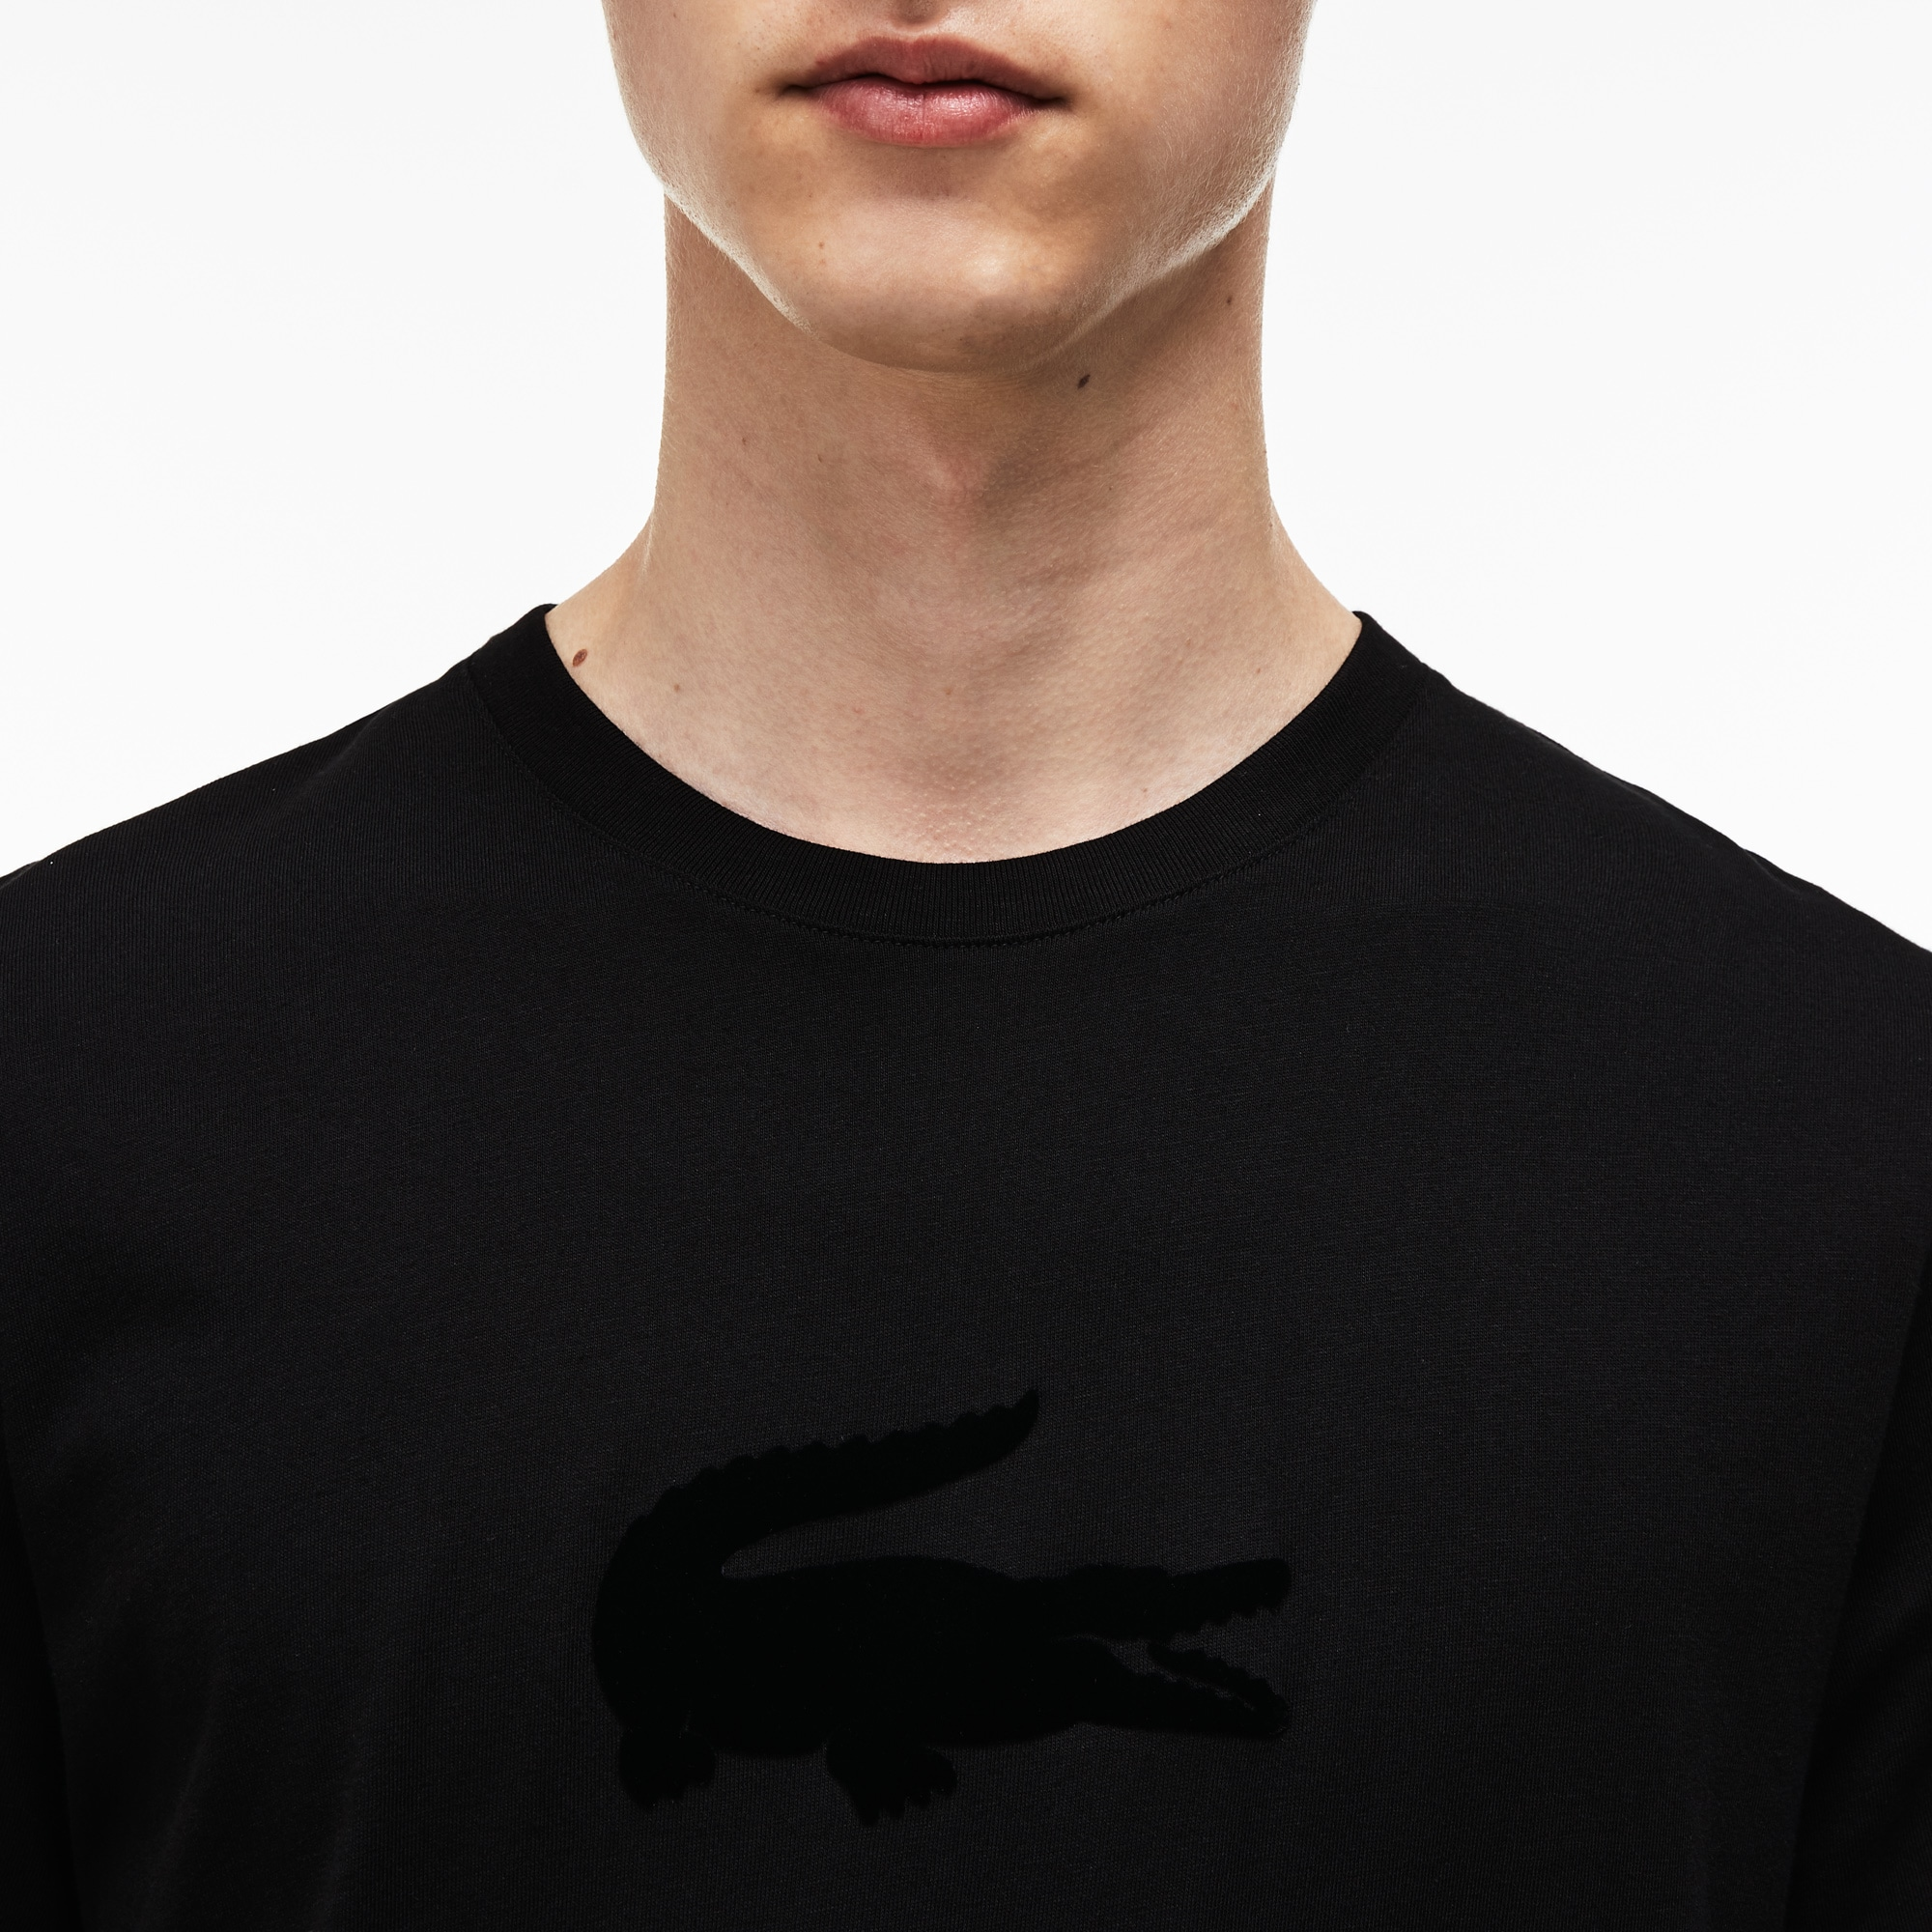 ff38cc63a9 Men's Crew Neck Oversized Crocodile Jersey T-shirt